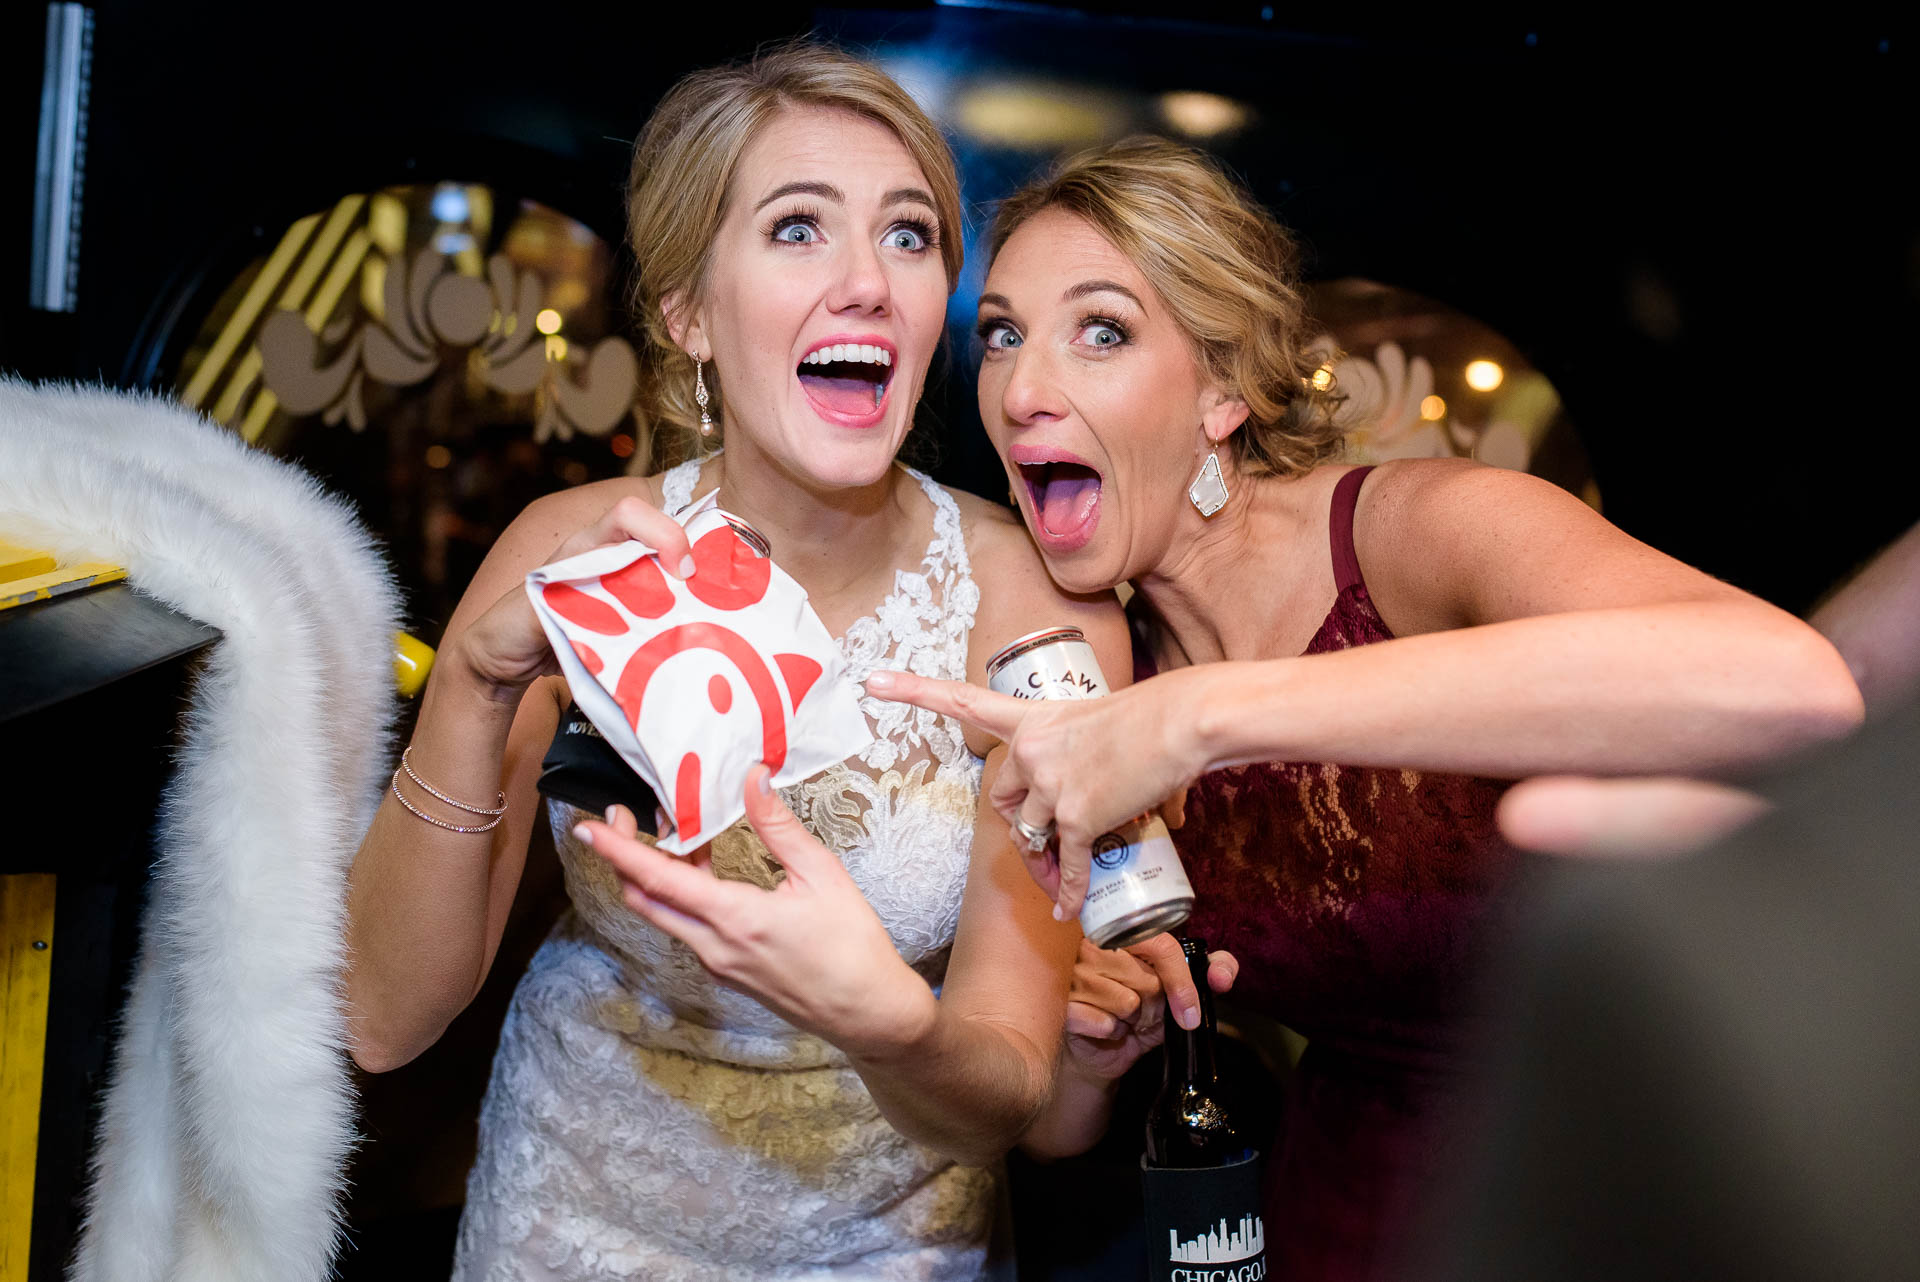 Bride and maid of honor with Chic Filet during a Mid America Club wedding in Chicago.